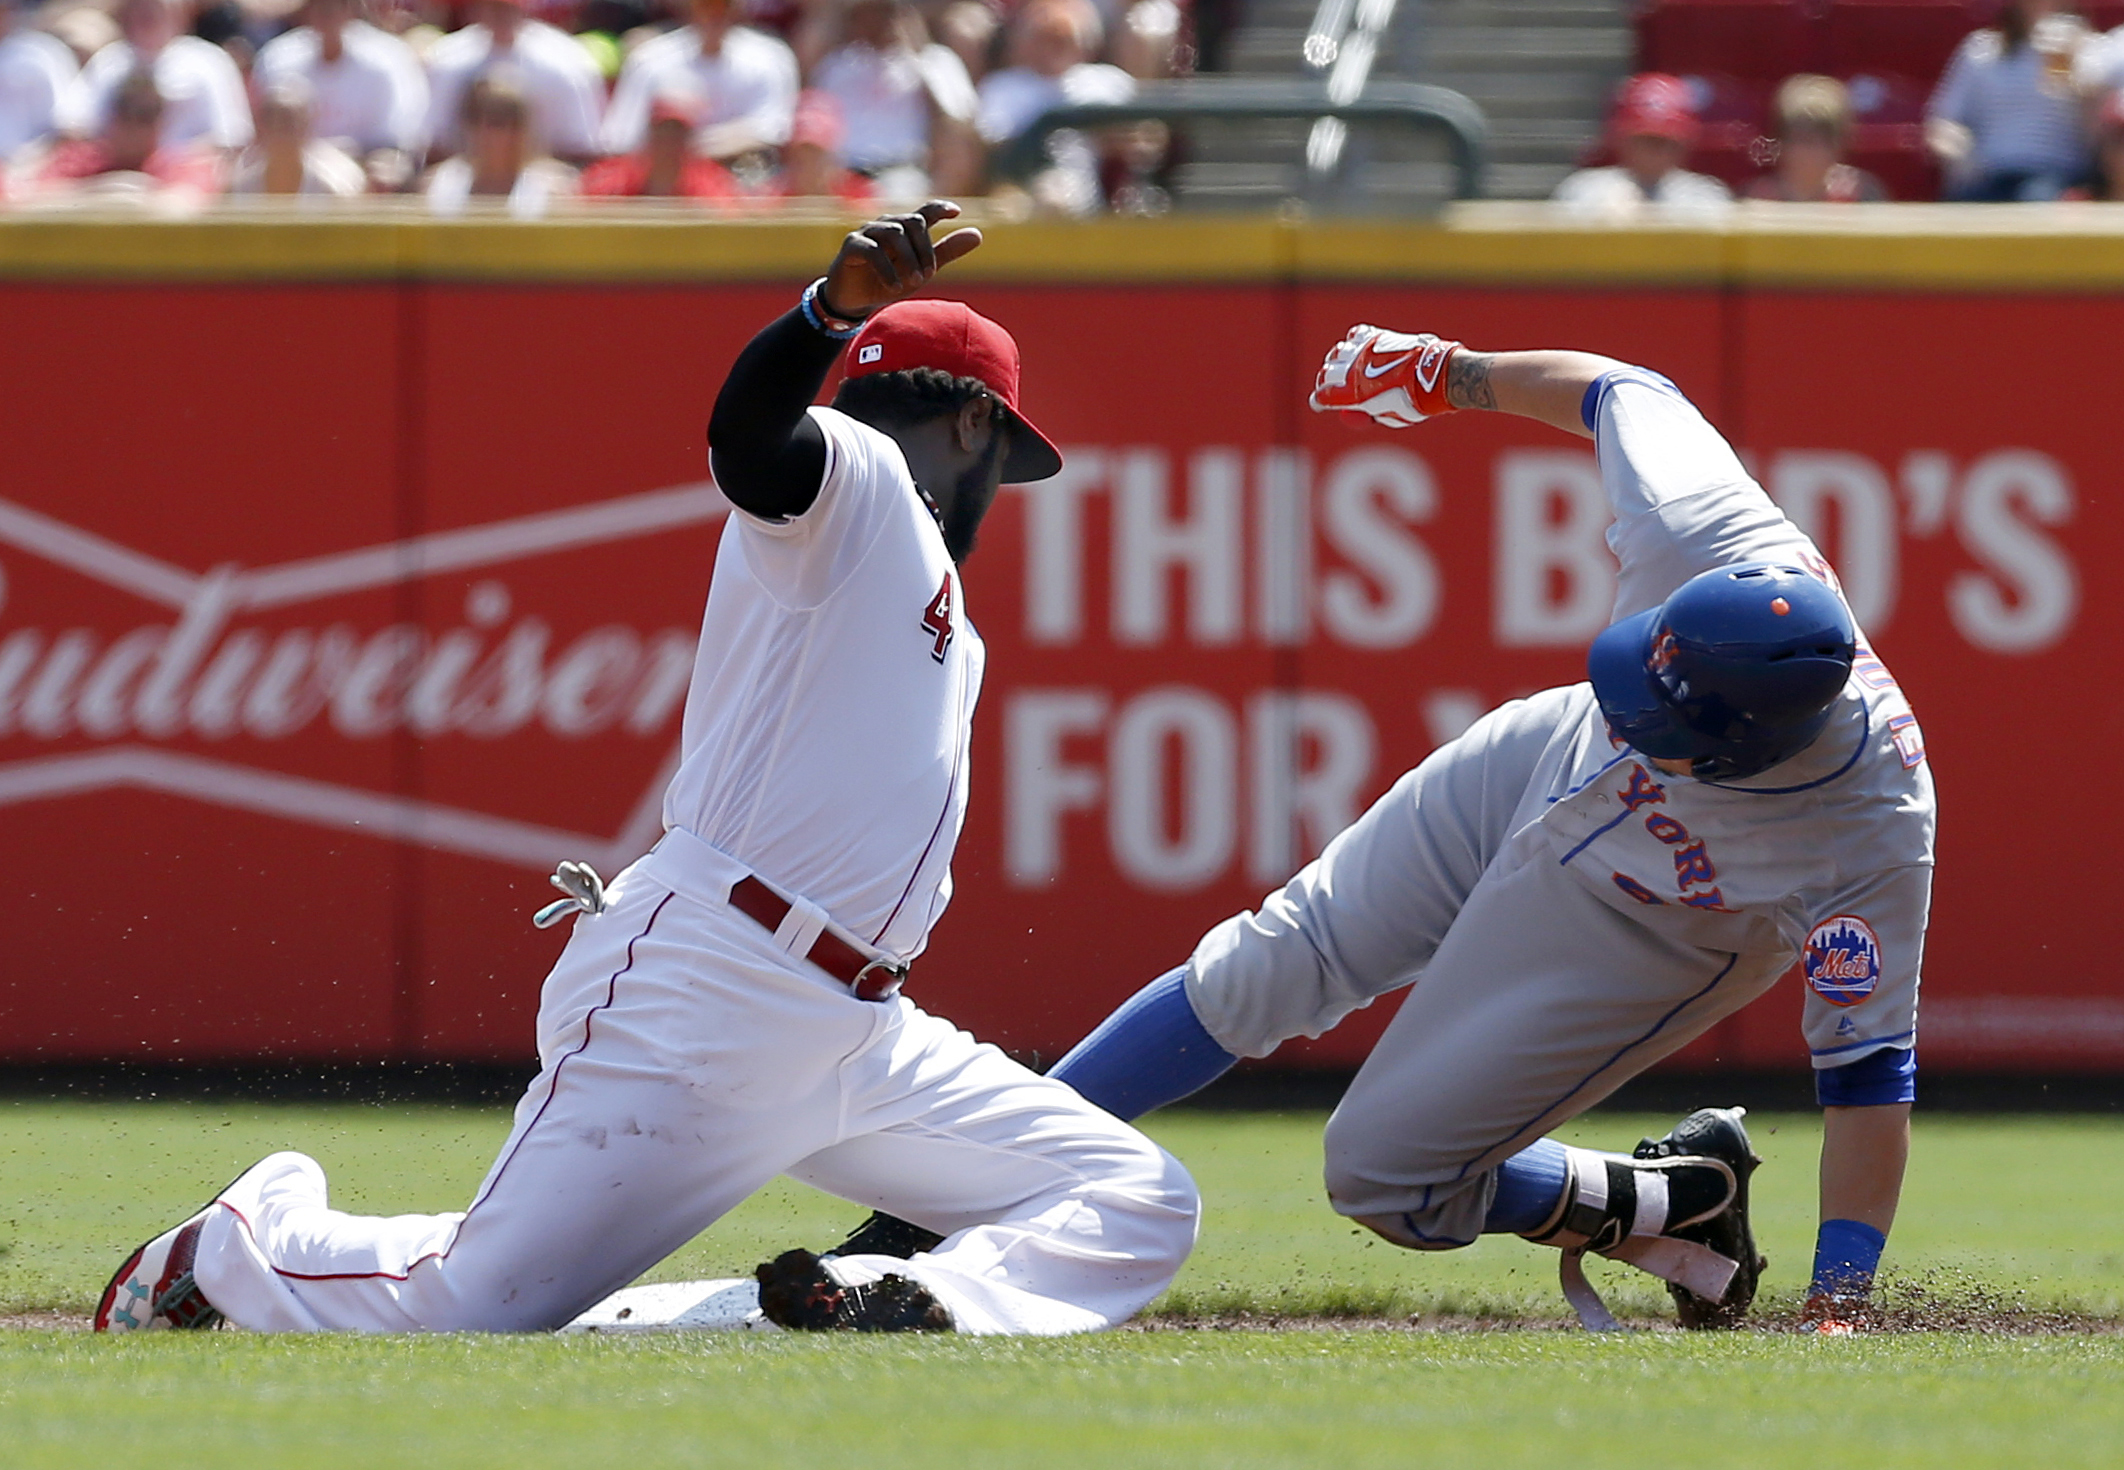 The Atlanta Braves completed a trade for Reds second baseman Brandon Phillips - seen here putting the tag on Wilmer Flores last September - after injury sidelined Sean Rodriguez for the season. Mandatory Credit: David Kohl-USA TODAY Sports